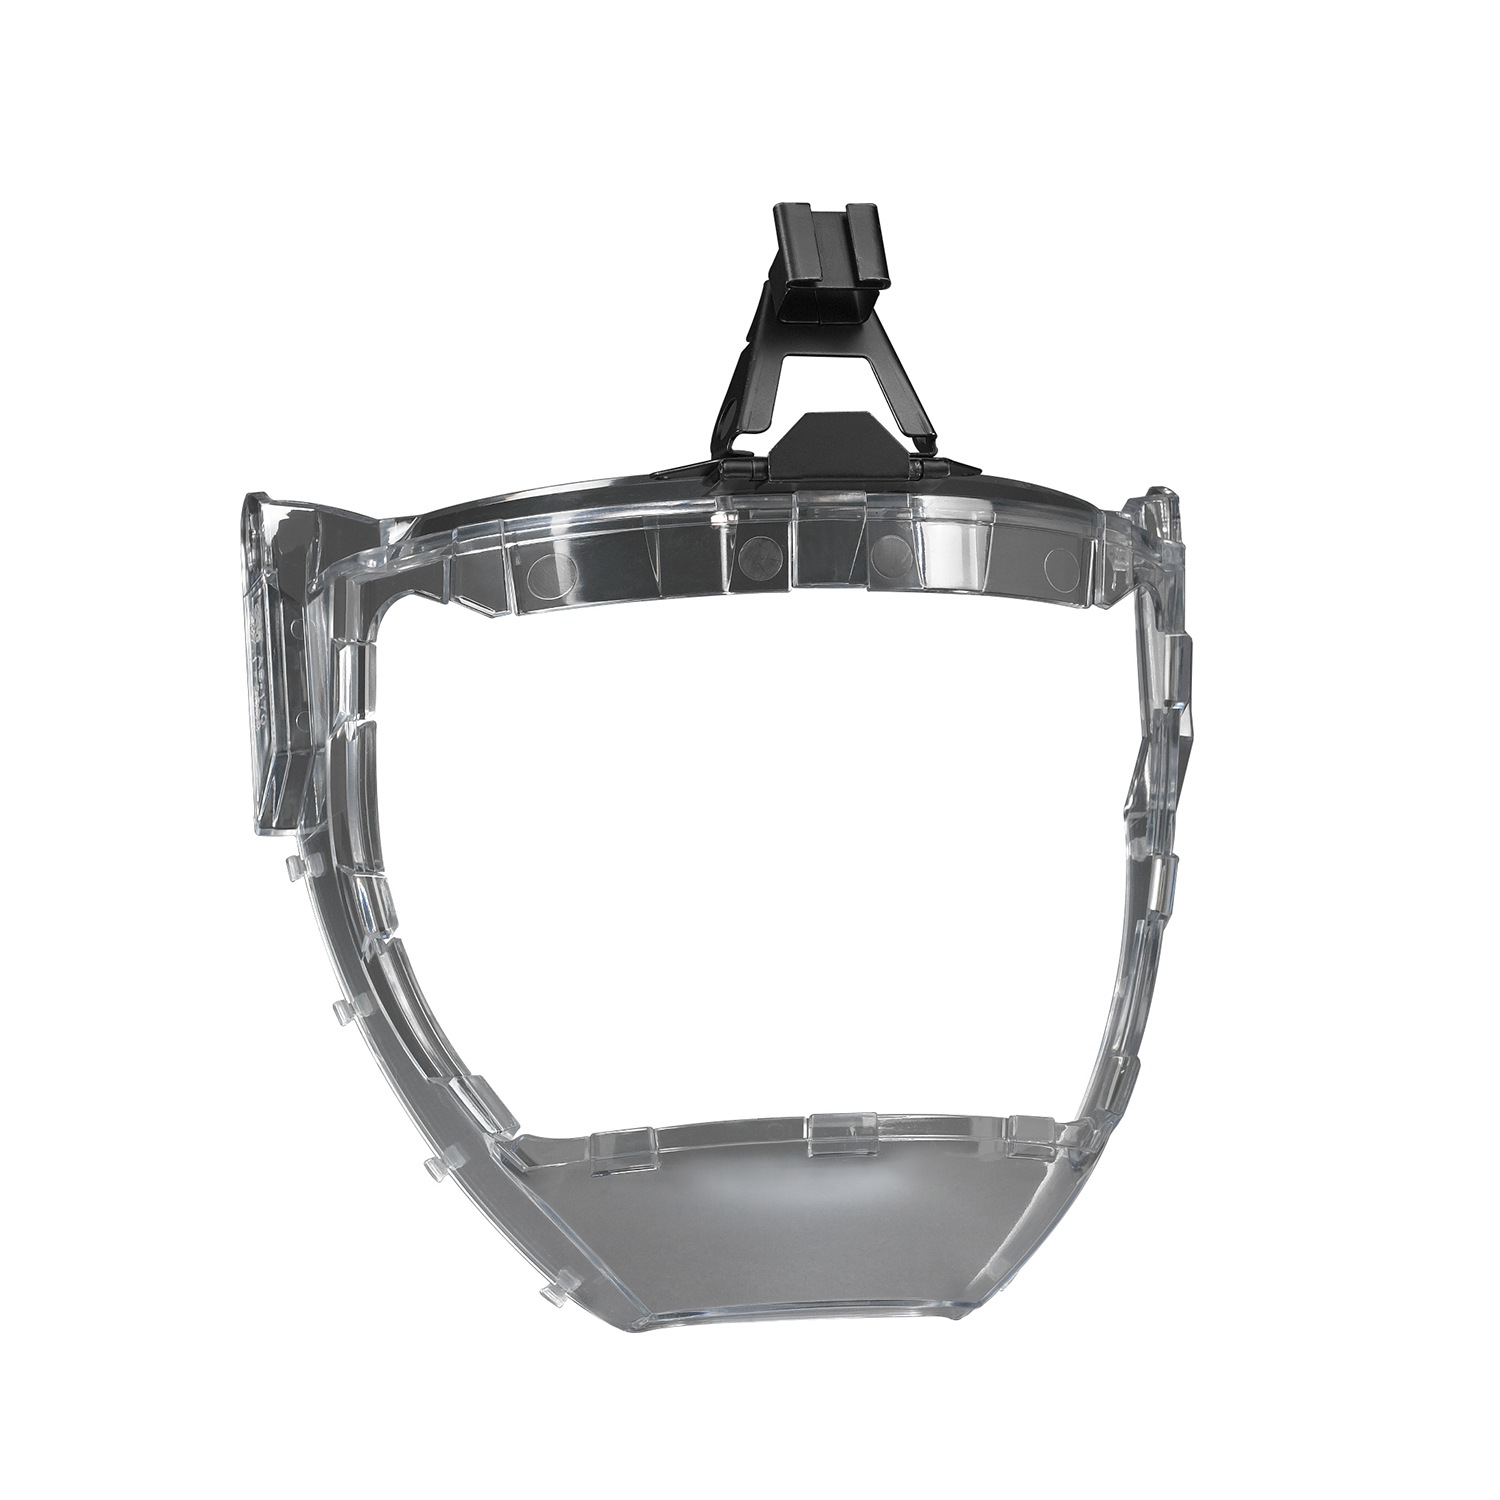 3M™ Airstream™ Visor Surround Assembly, AS-170M, 1/case